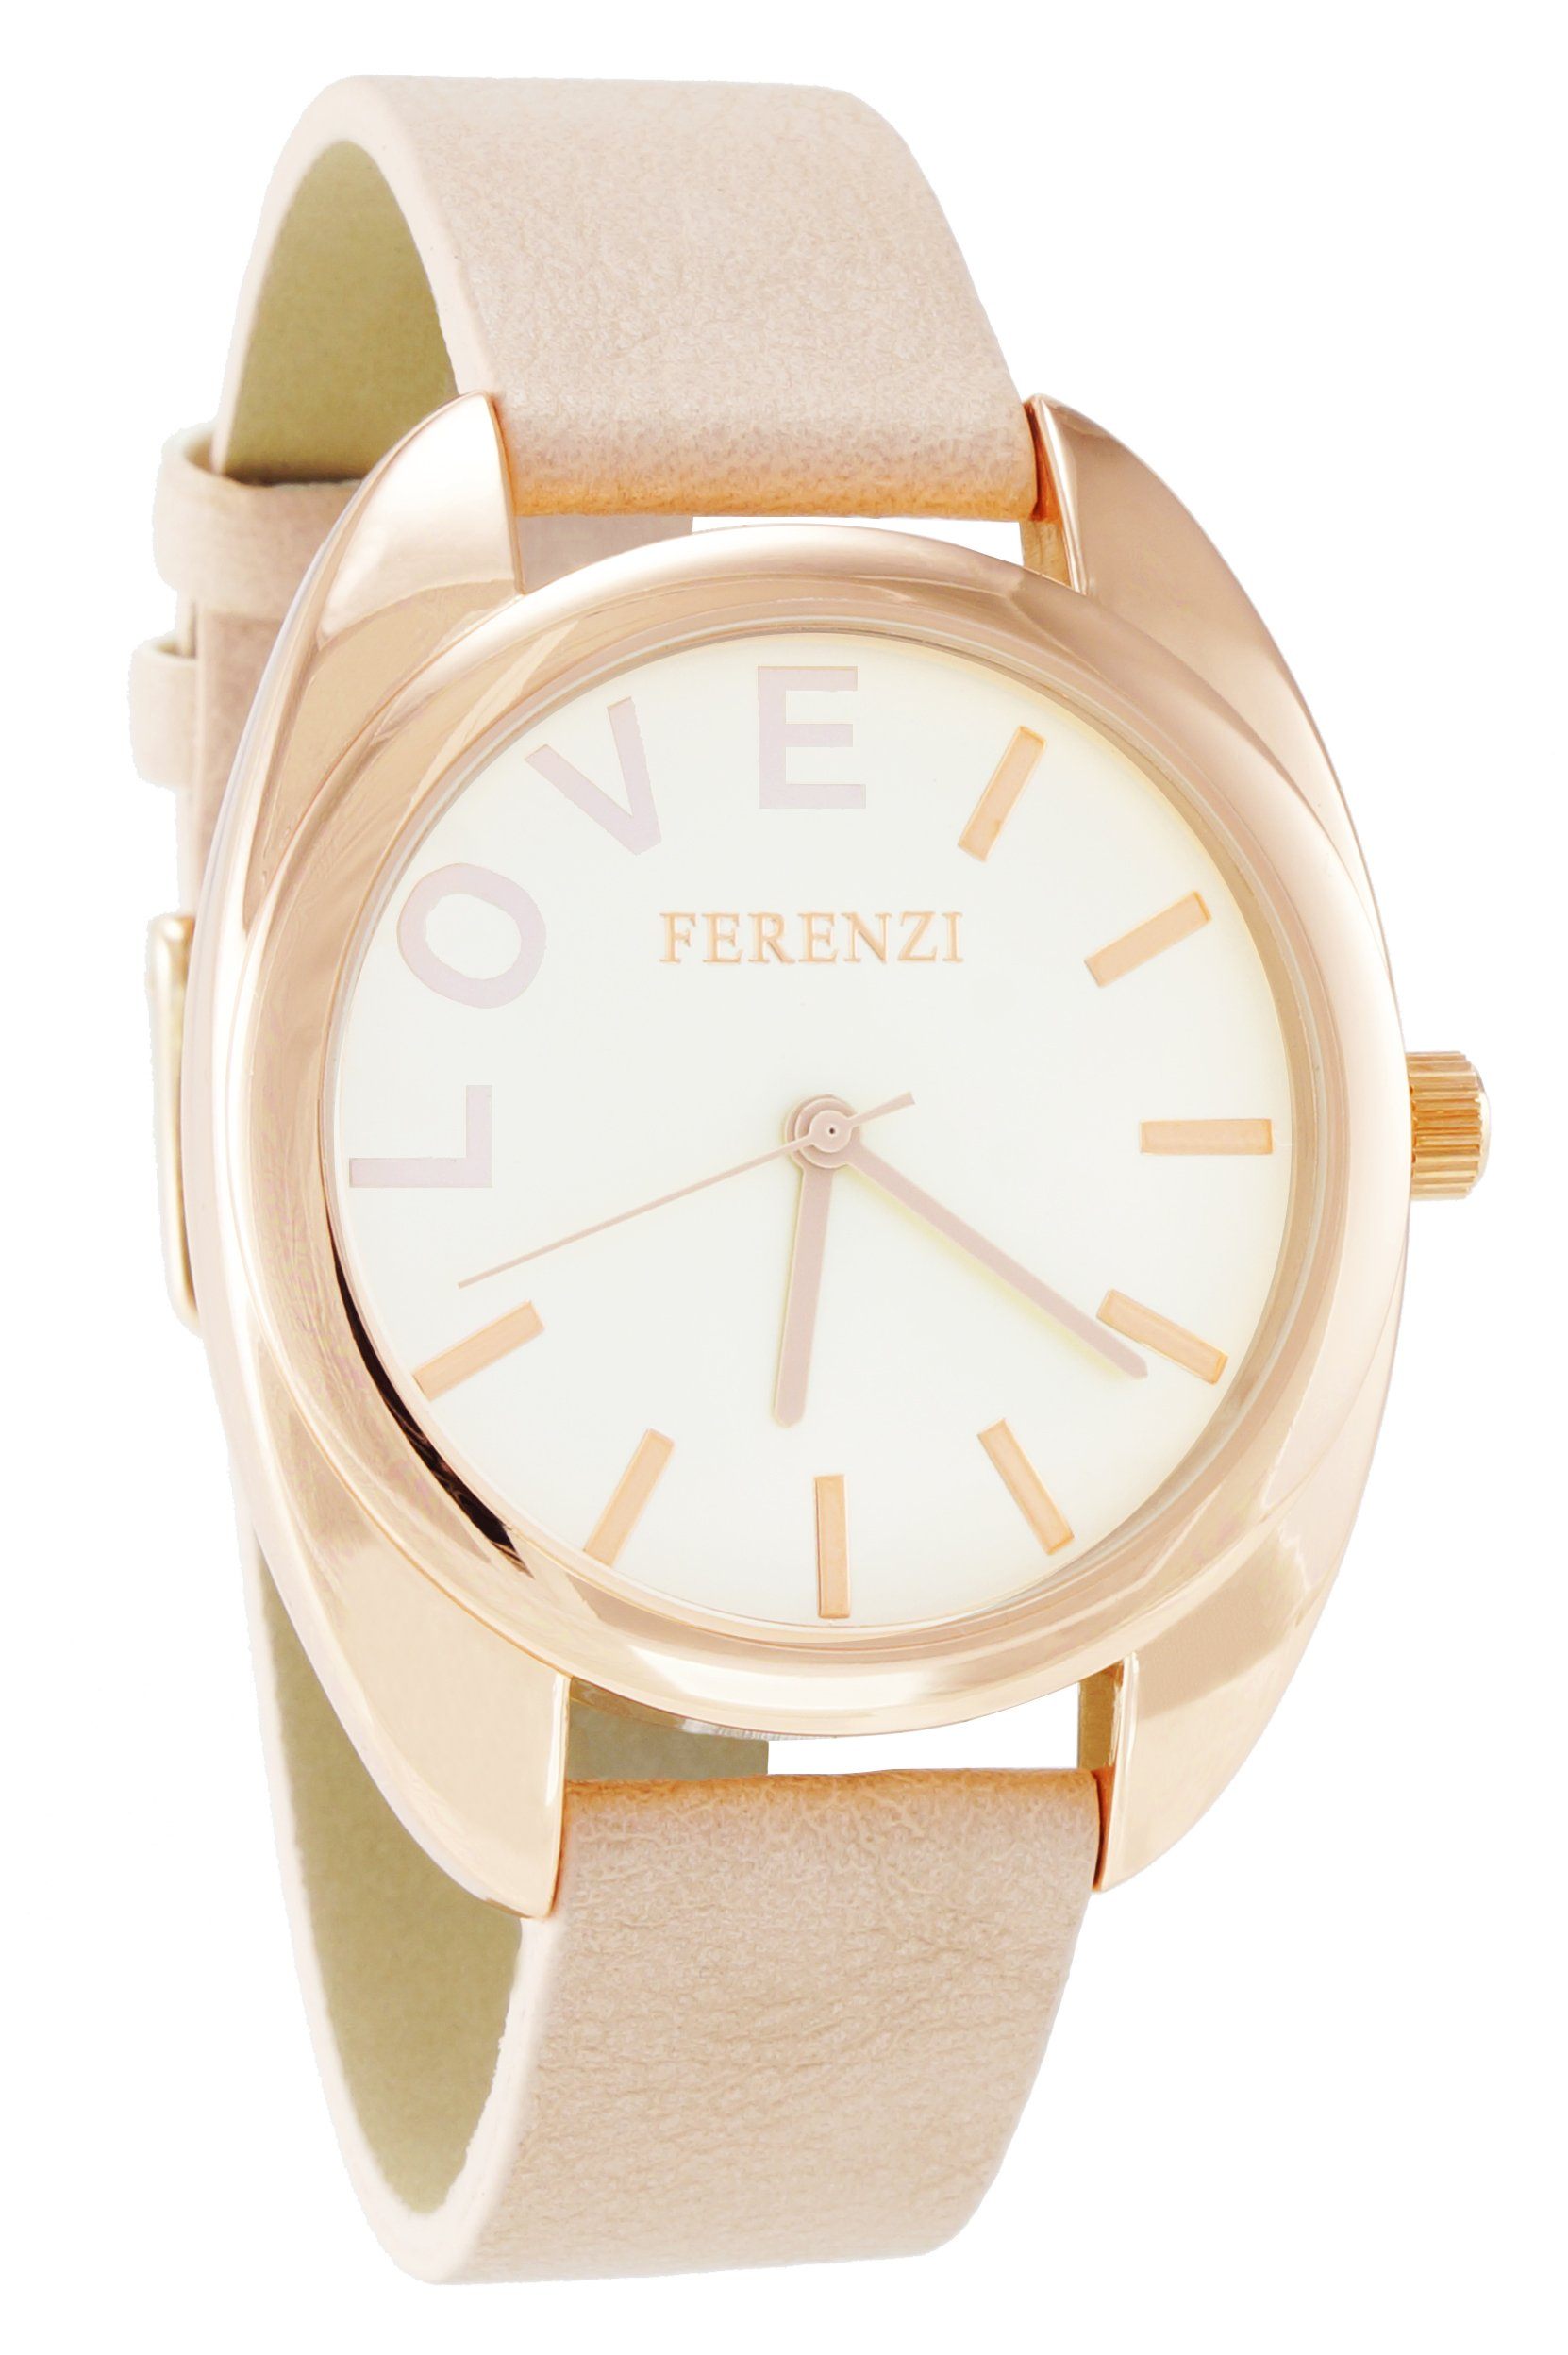 Ferenzi Women's | Classy Rose Gold Tone Case LOVE Watch with Peach Band | FZ15403